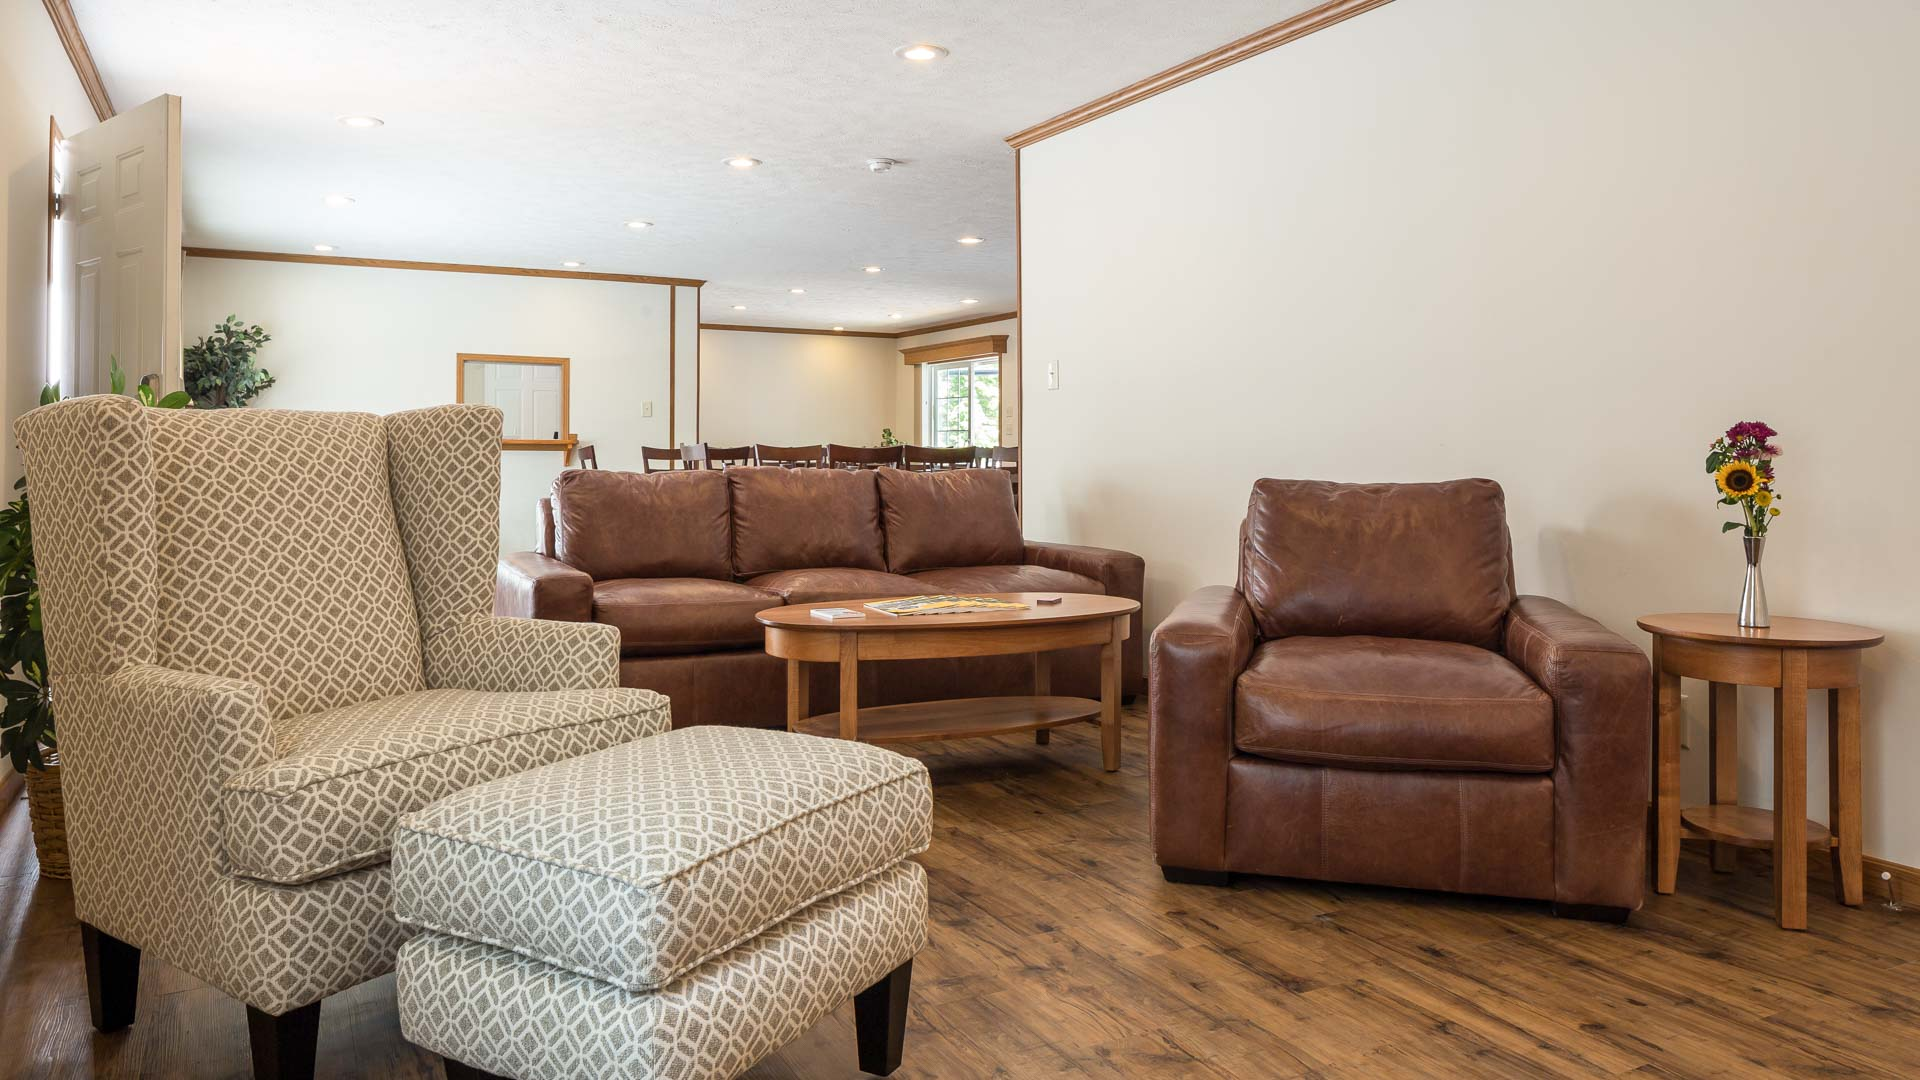 Maplewood Manor Manufactured Homes Community Clubhouse Interior in Brunswick, ME